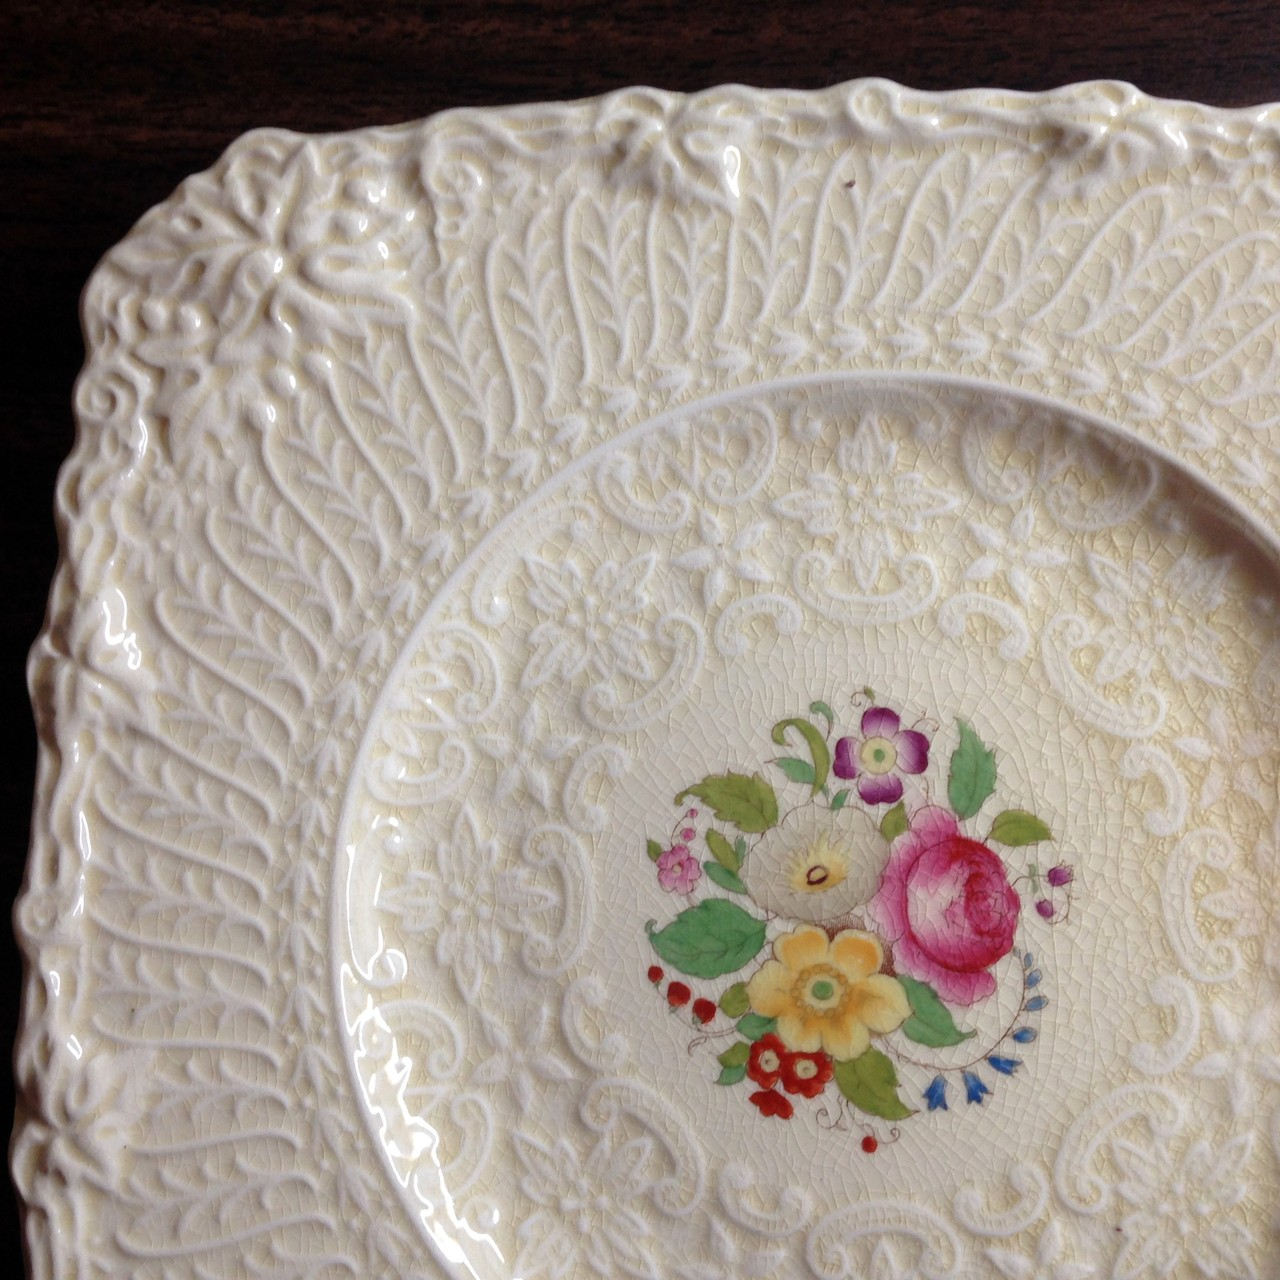 Textured Leaf Scroll Pink Rose OLD Square Plate England Edge www.DecorativeDishes.net